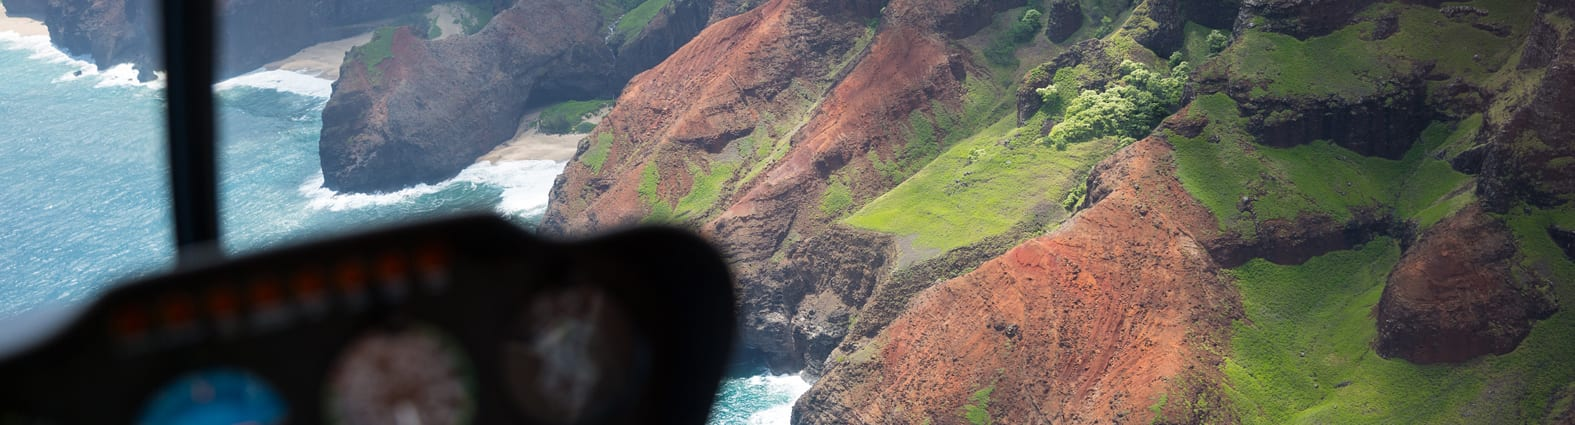 Maui helicopter Tours Hawaii - 2290